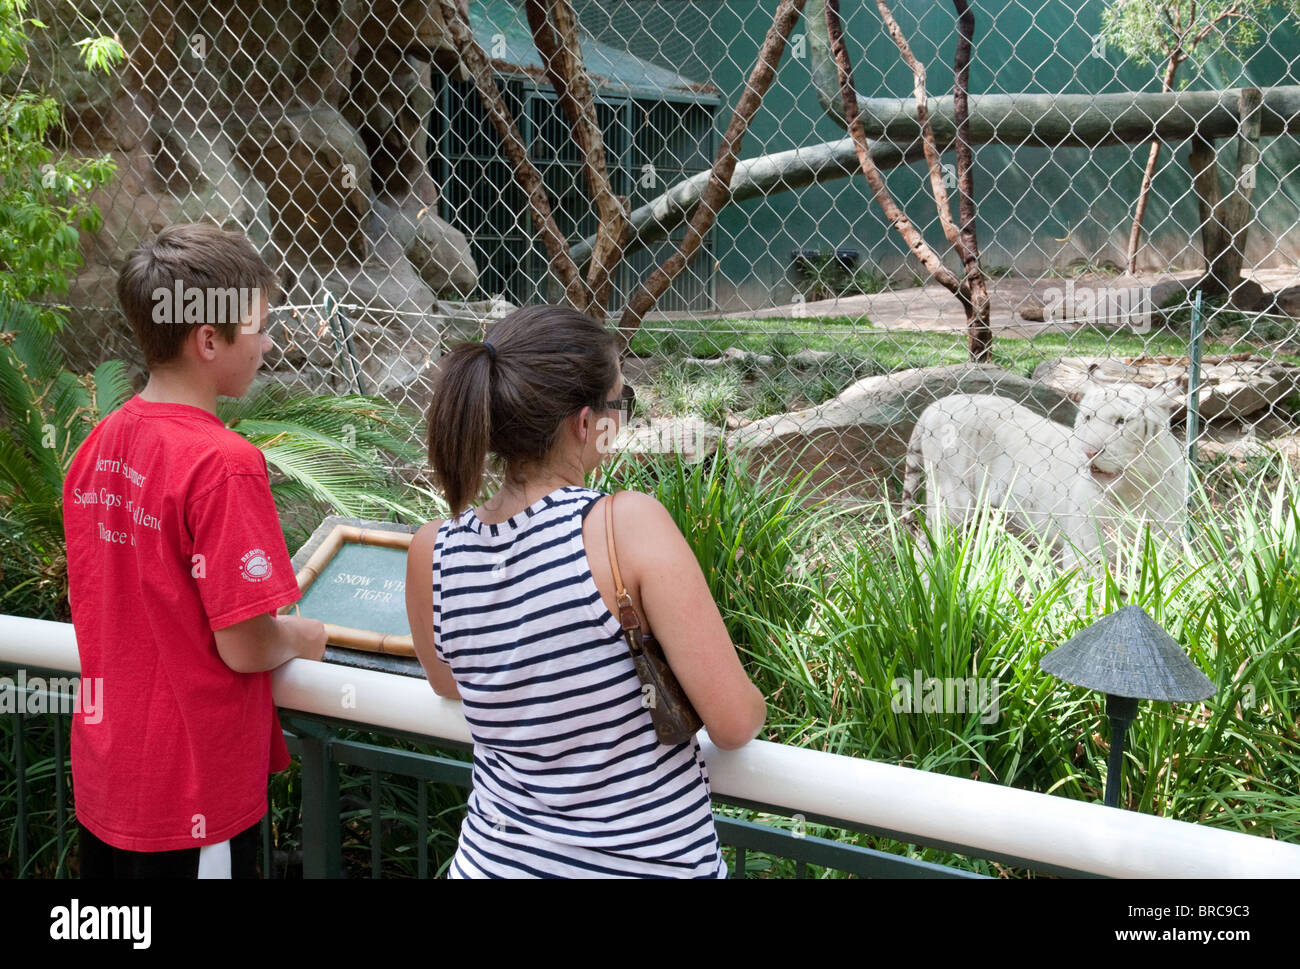 People looking at a white tiger, Siegfried & Roy's Secret Garden and Dolphin Habitat, the Mirage Hotel, - Stock Image